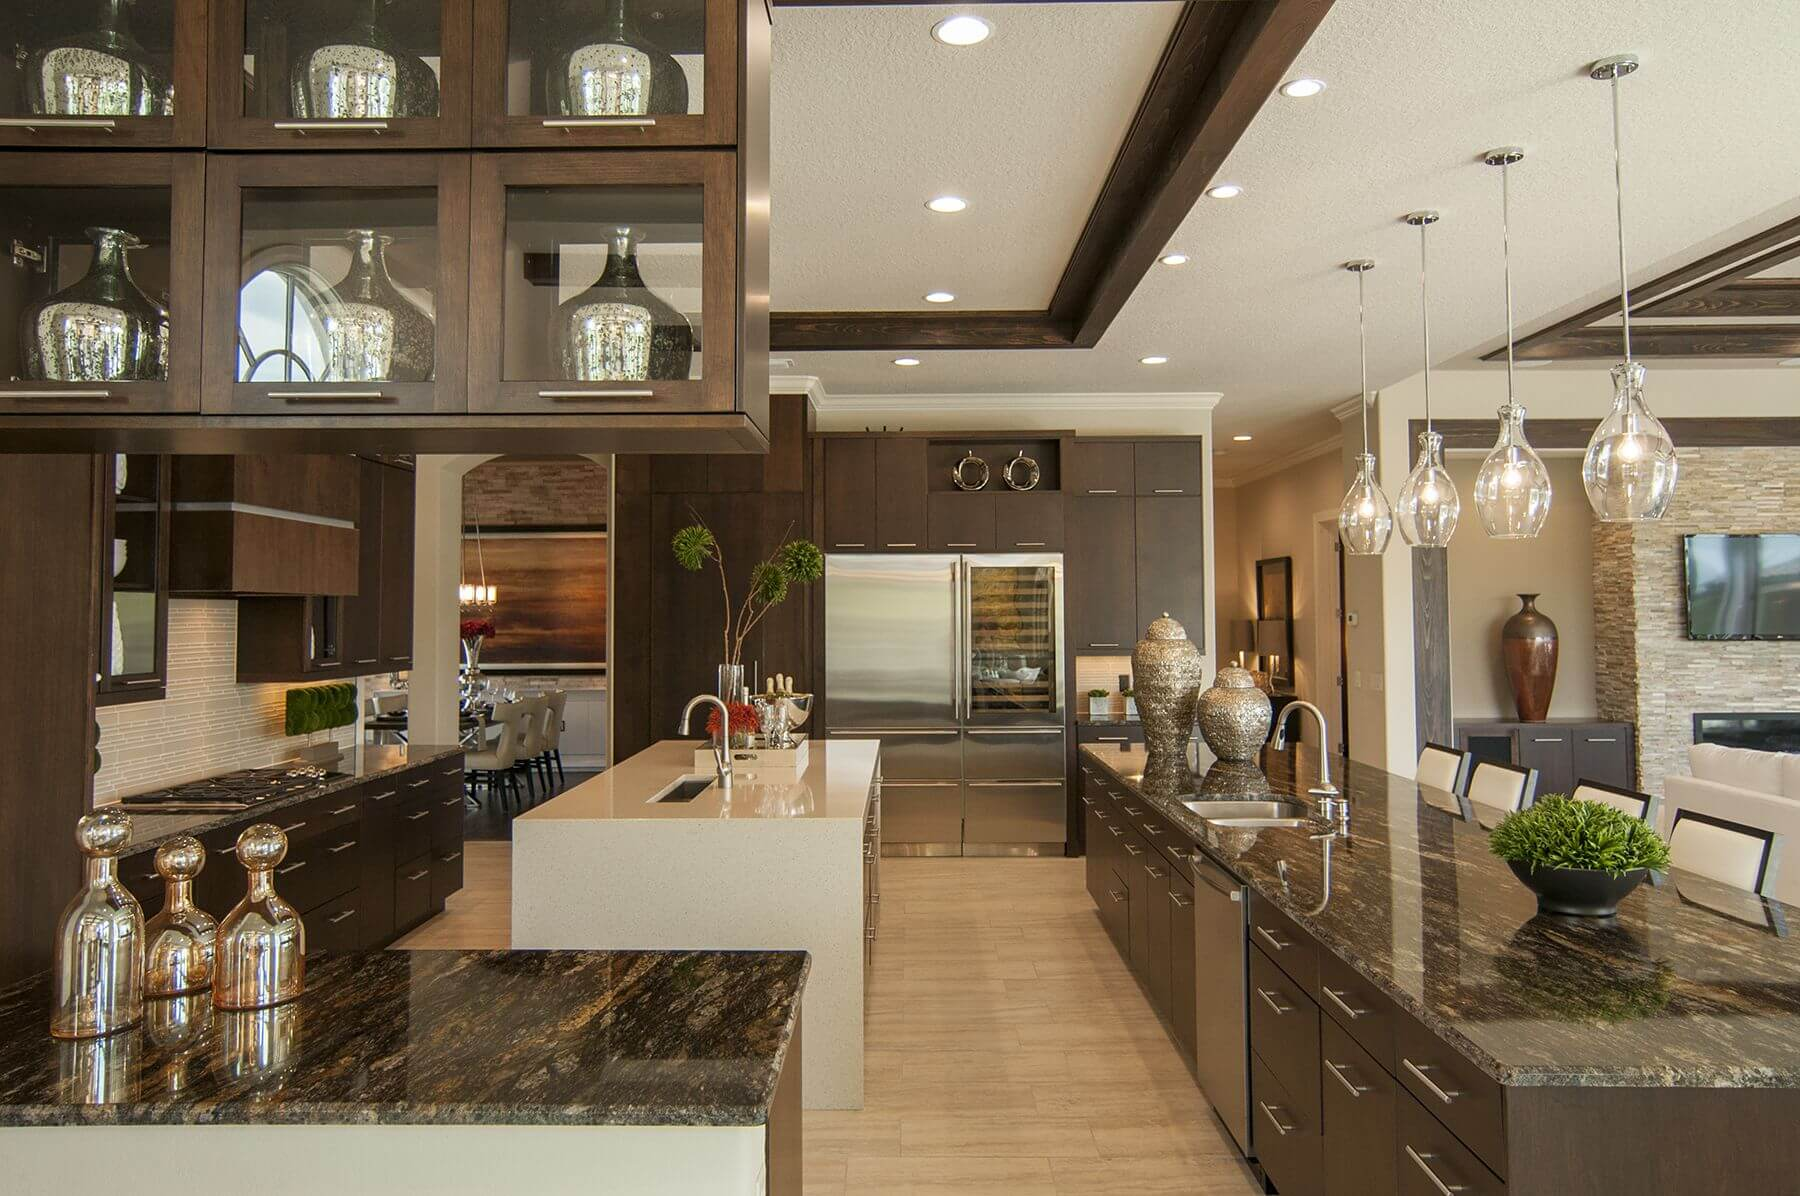 Ultra Modern Look Kitchen Flush With Dark Tones Marble Countertops Minimalist Wood Cabinetry